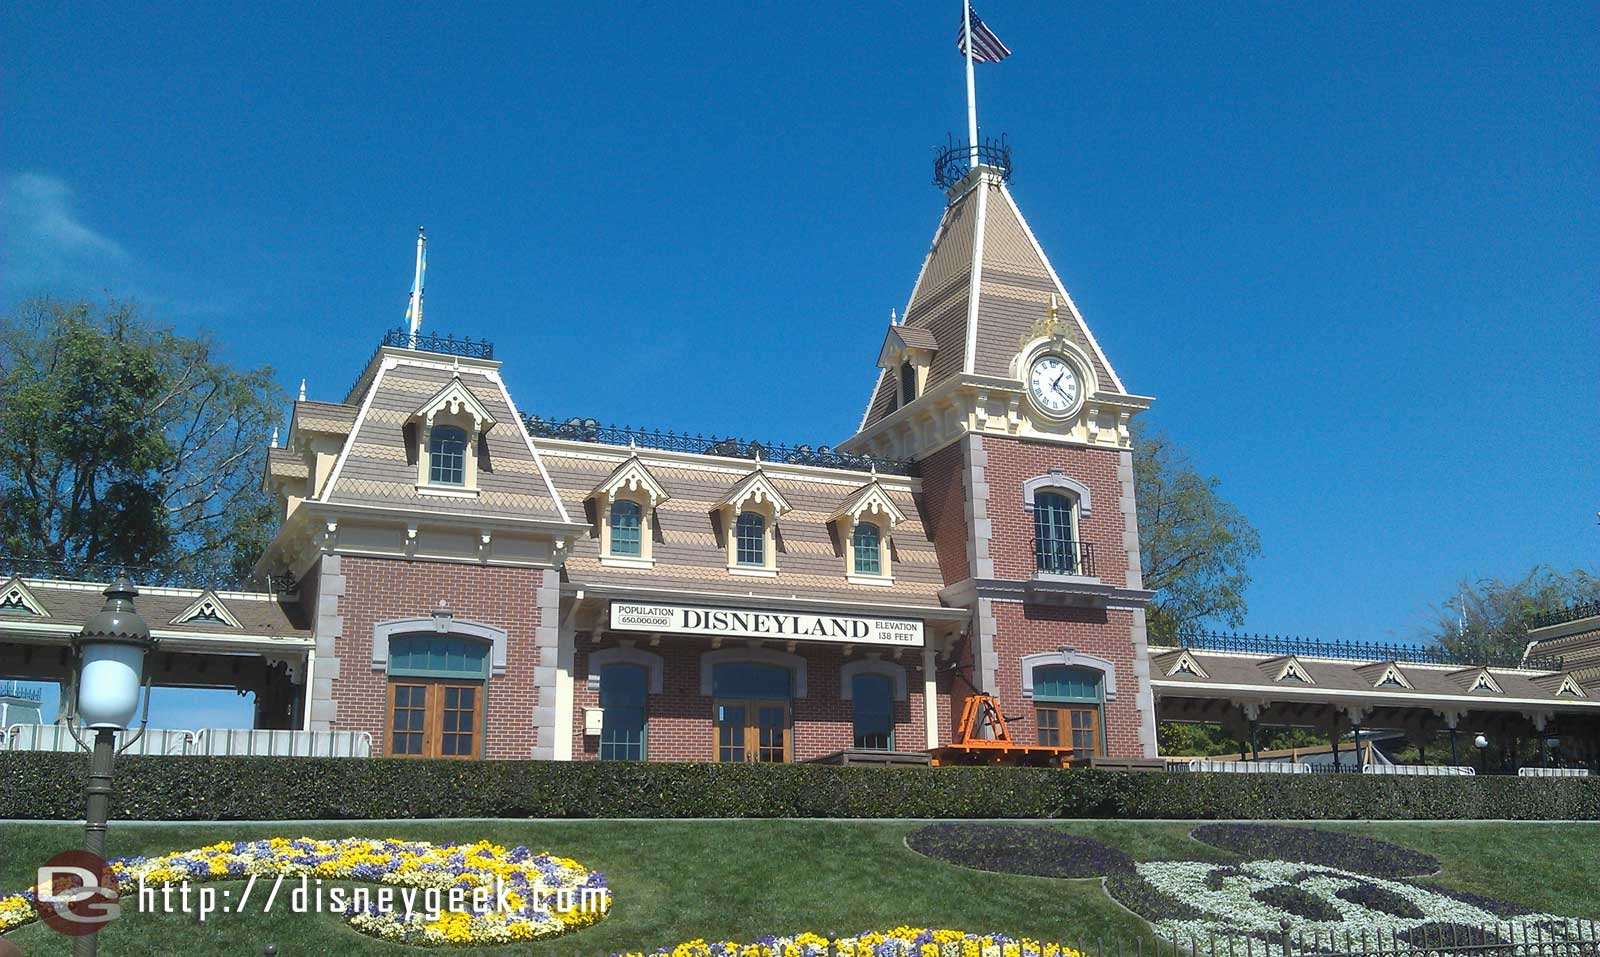 Just arrived at #Disneyland for the afternoon.  The Main Street train station scaffolding is down, but not open